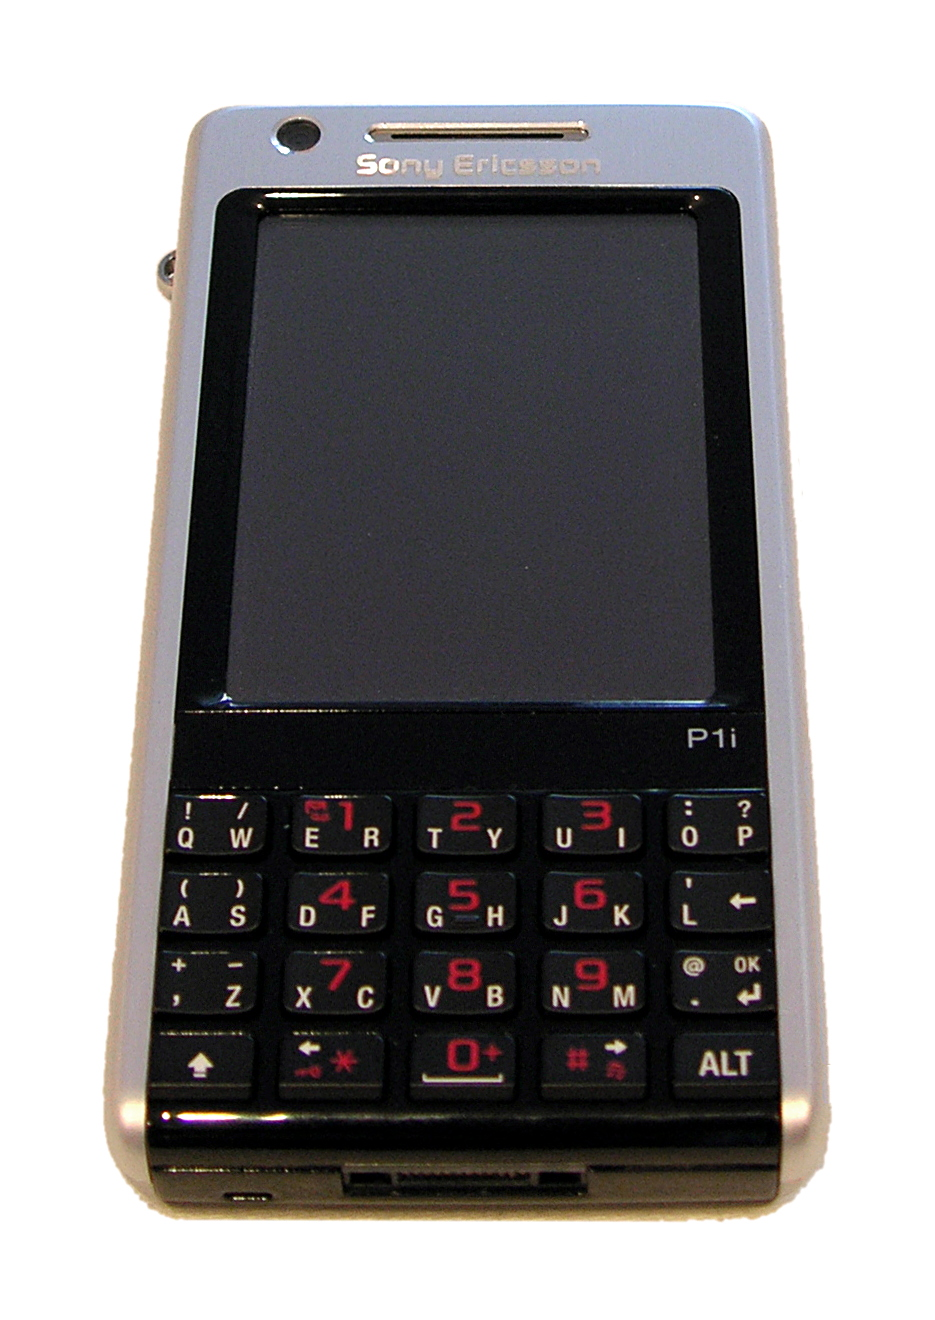 A Sony Ericsson P1i with a physical keyboard as well as a touch screen